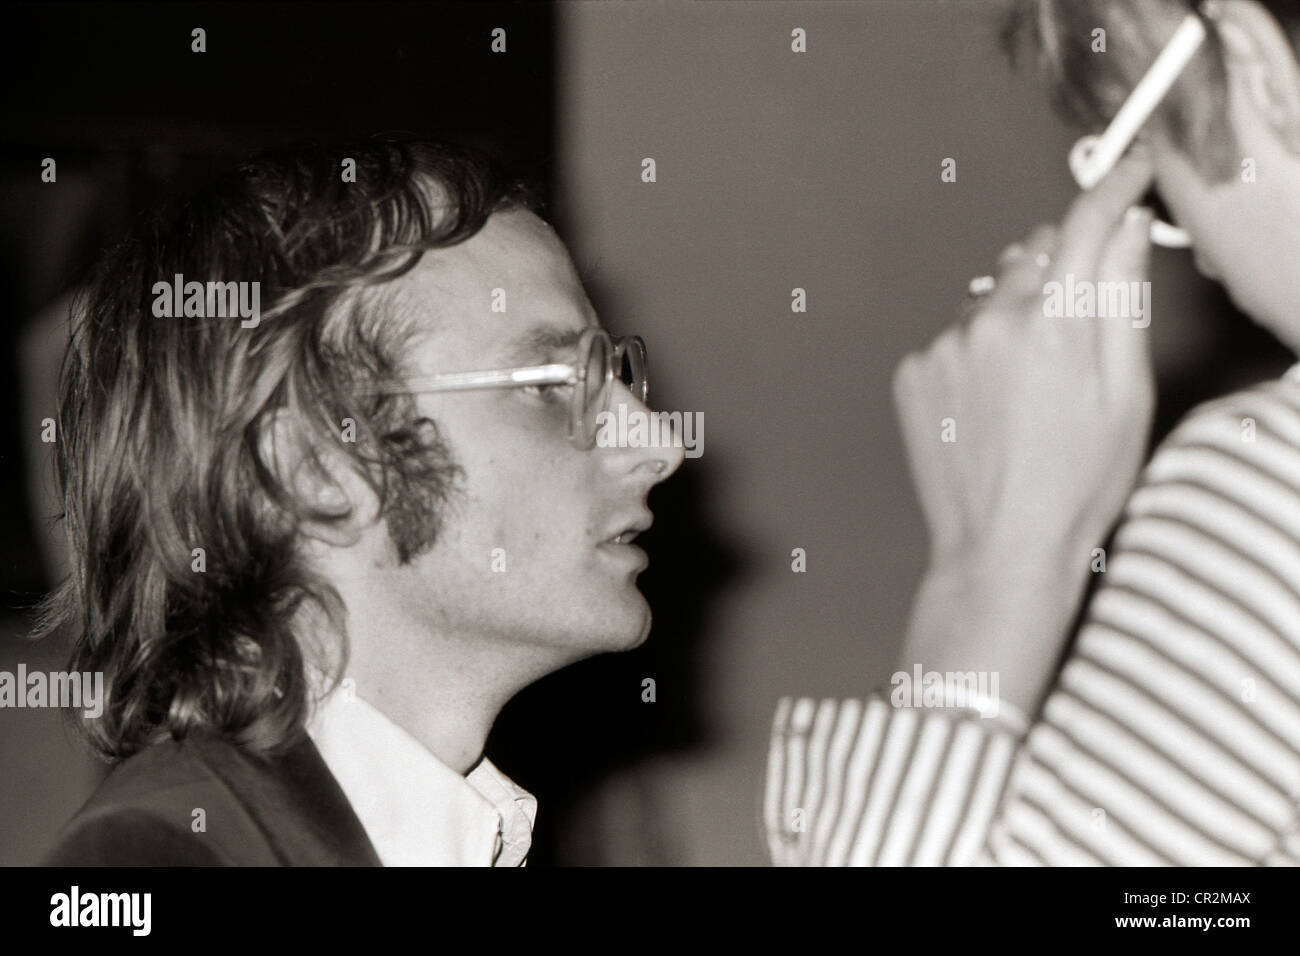 Architectural journalist Peter Murray talking to Janet Street-Porter at the ICA Summer Session, London England 1972 - Stock Image